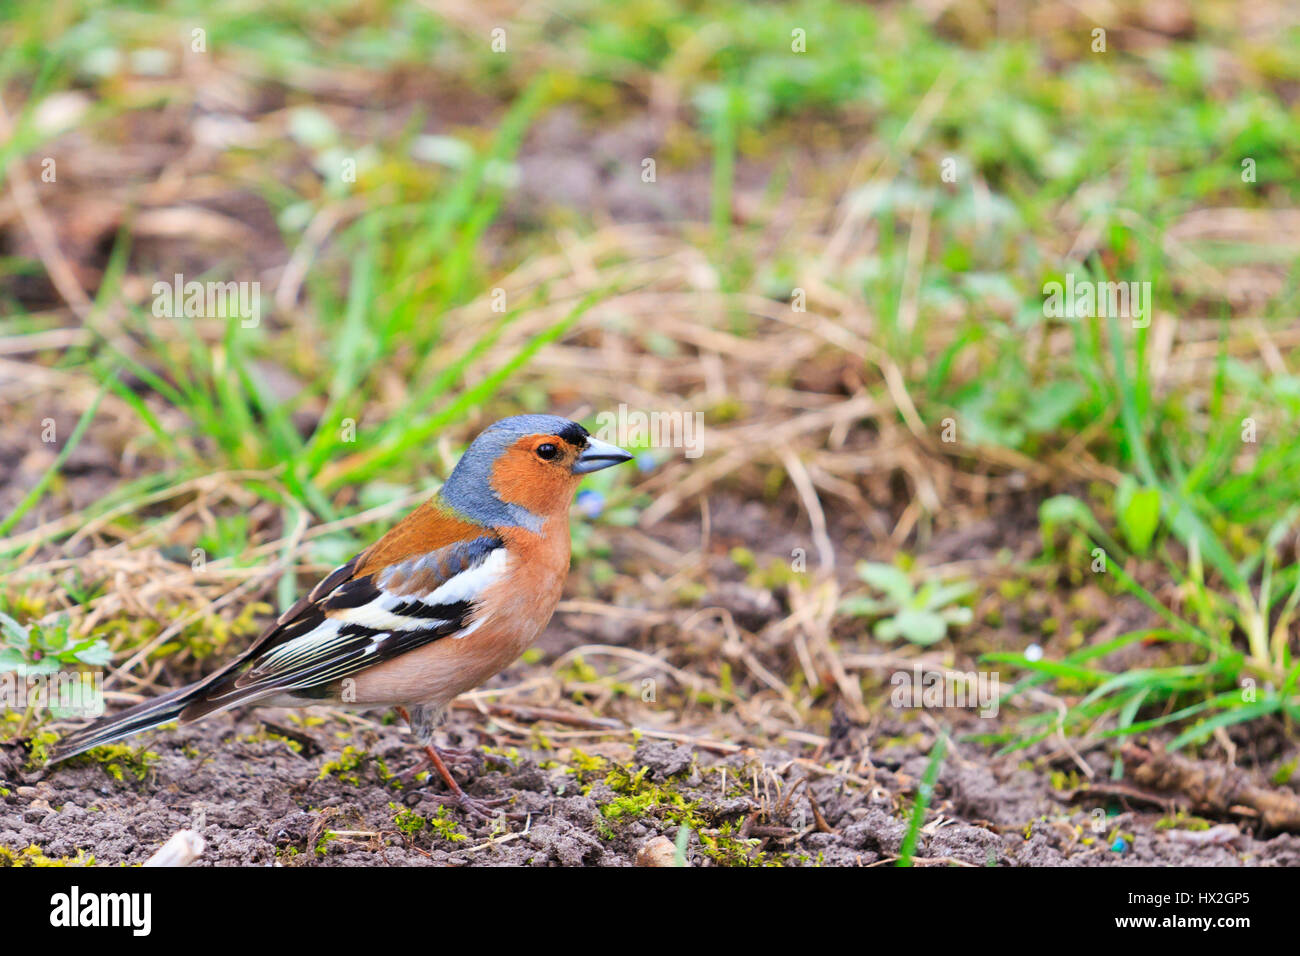 chaffinch sits on the grass in the garden,Spring birds singing, beautiful melody, the birds in the garden, the birds - Stock Image